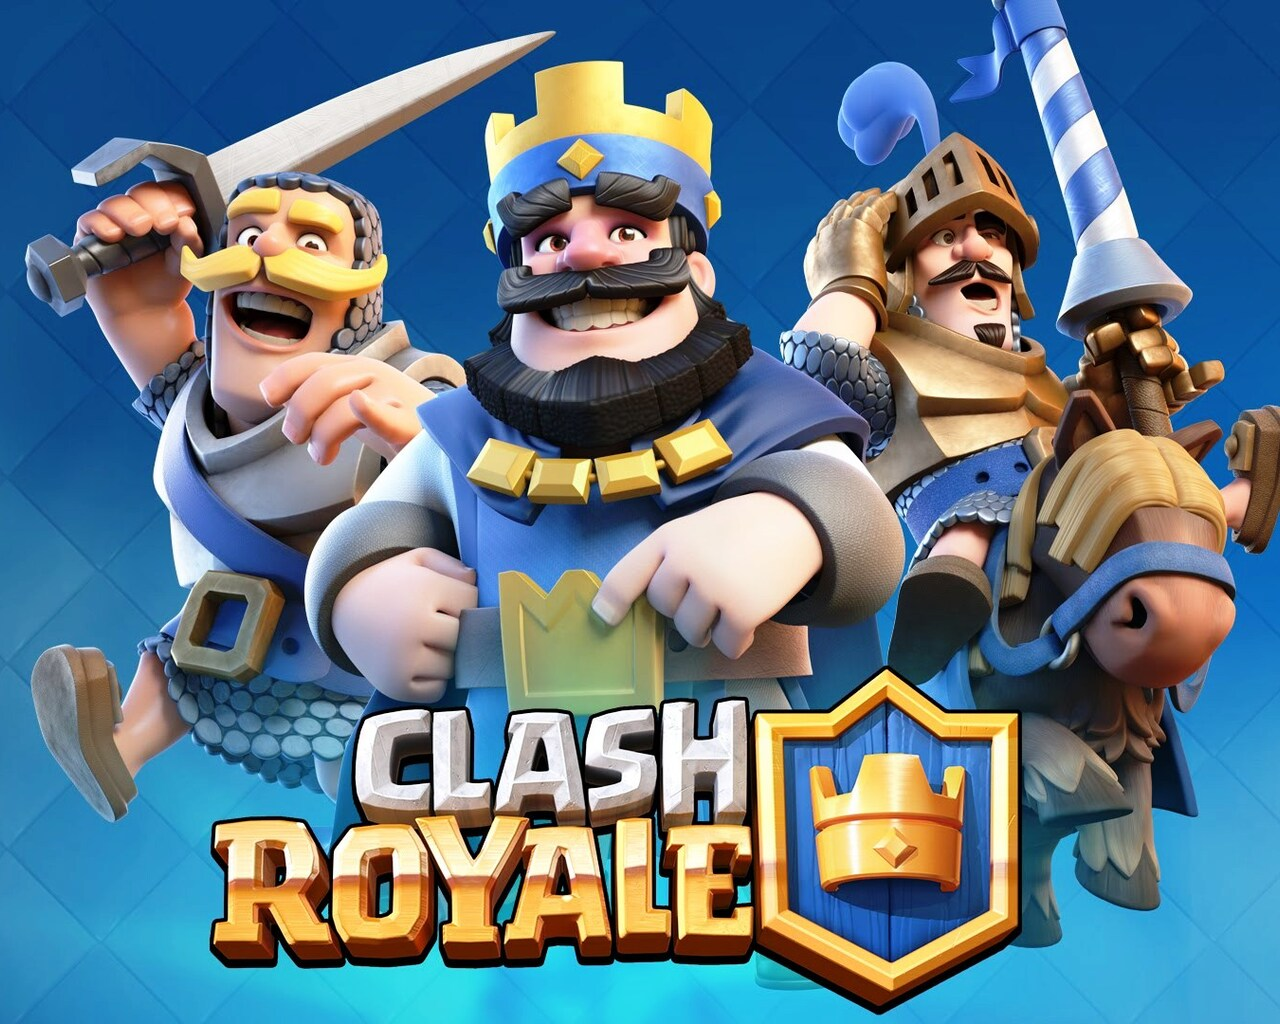 1280x1024 Supercell Clash Royale Hd 1280x1024 Resolution Hd 4k Wallpapers Images Backgrounds Photos And Pictures